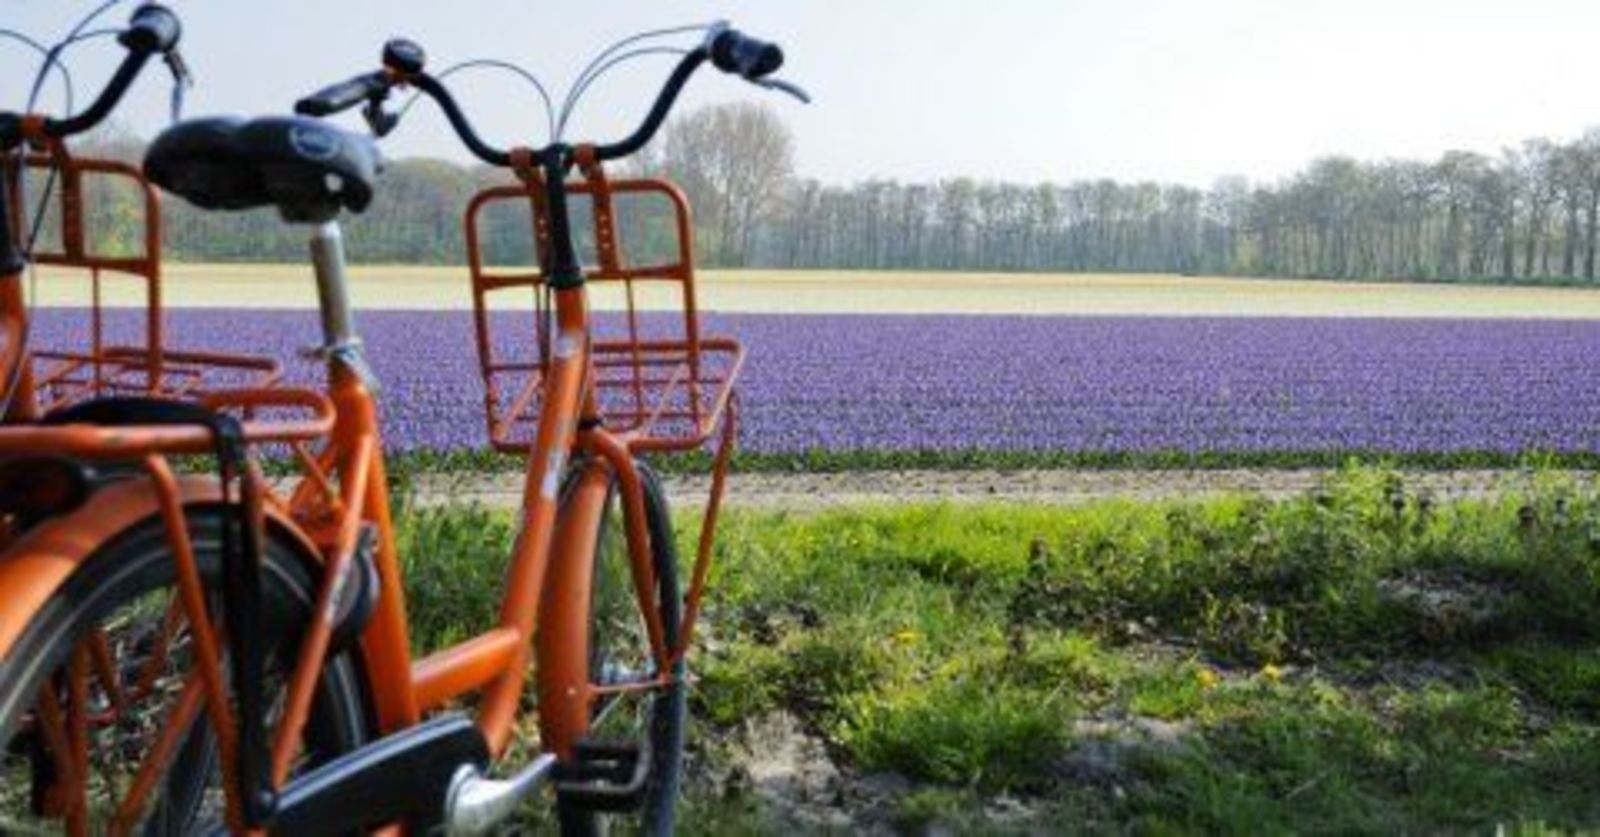 Biking in the Bollen region